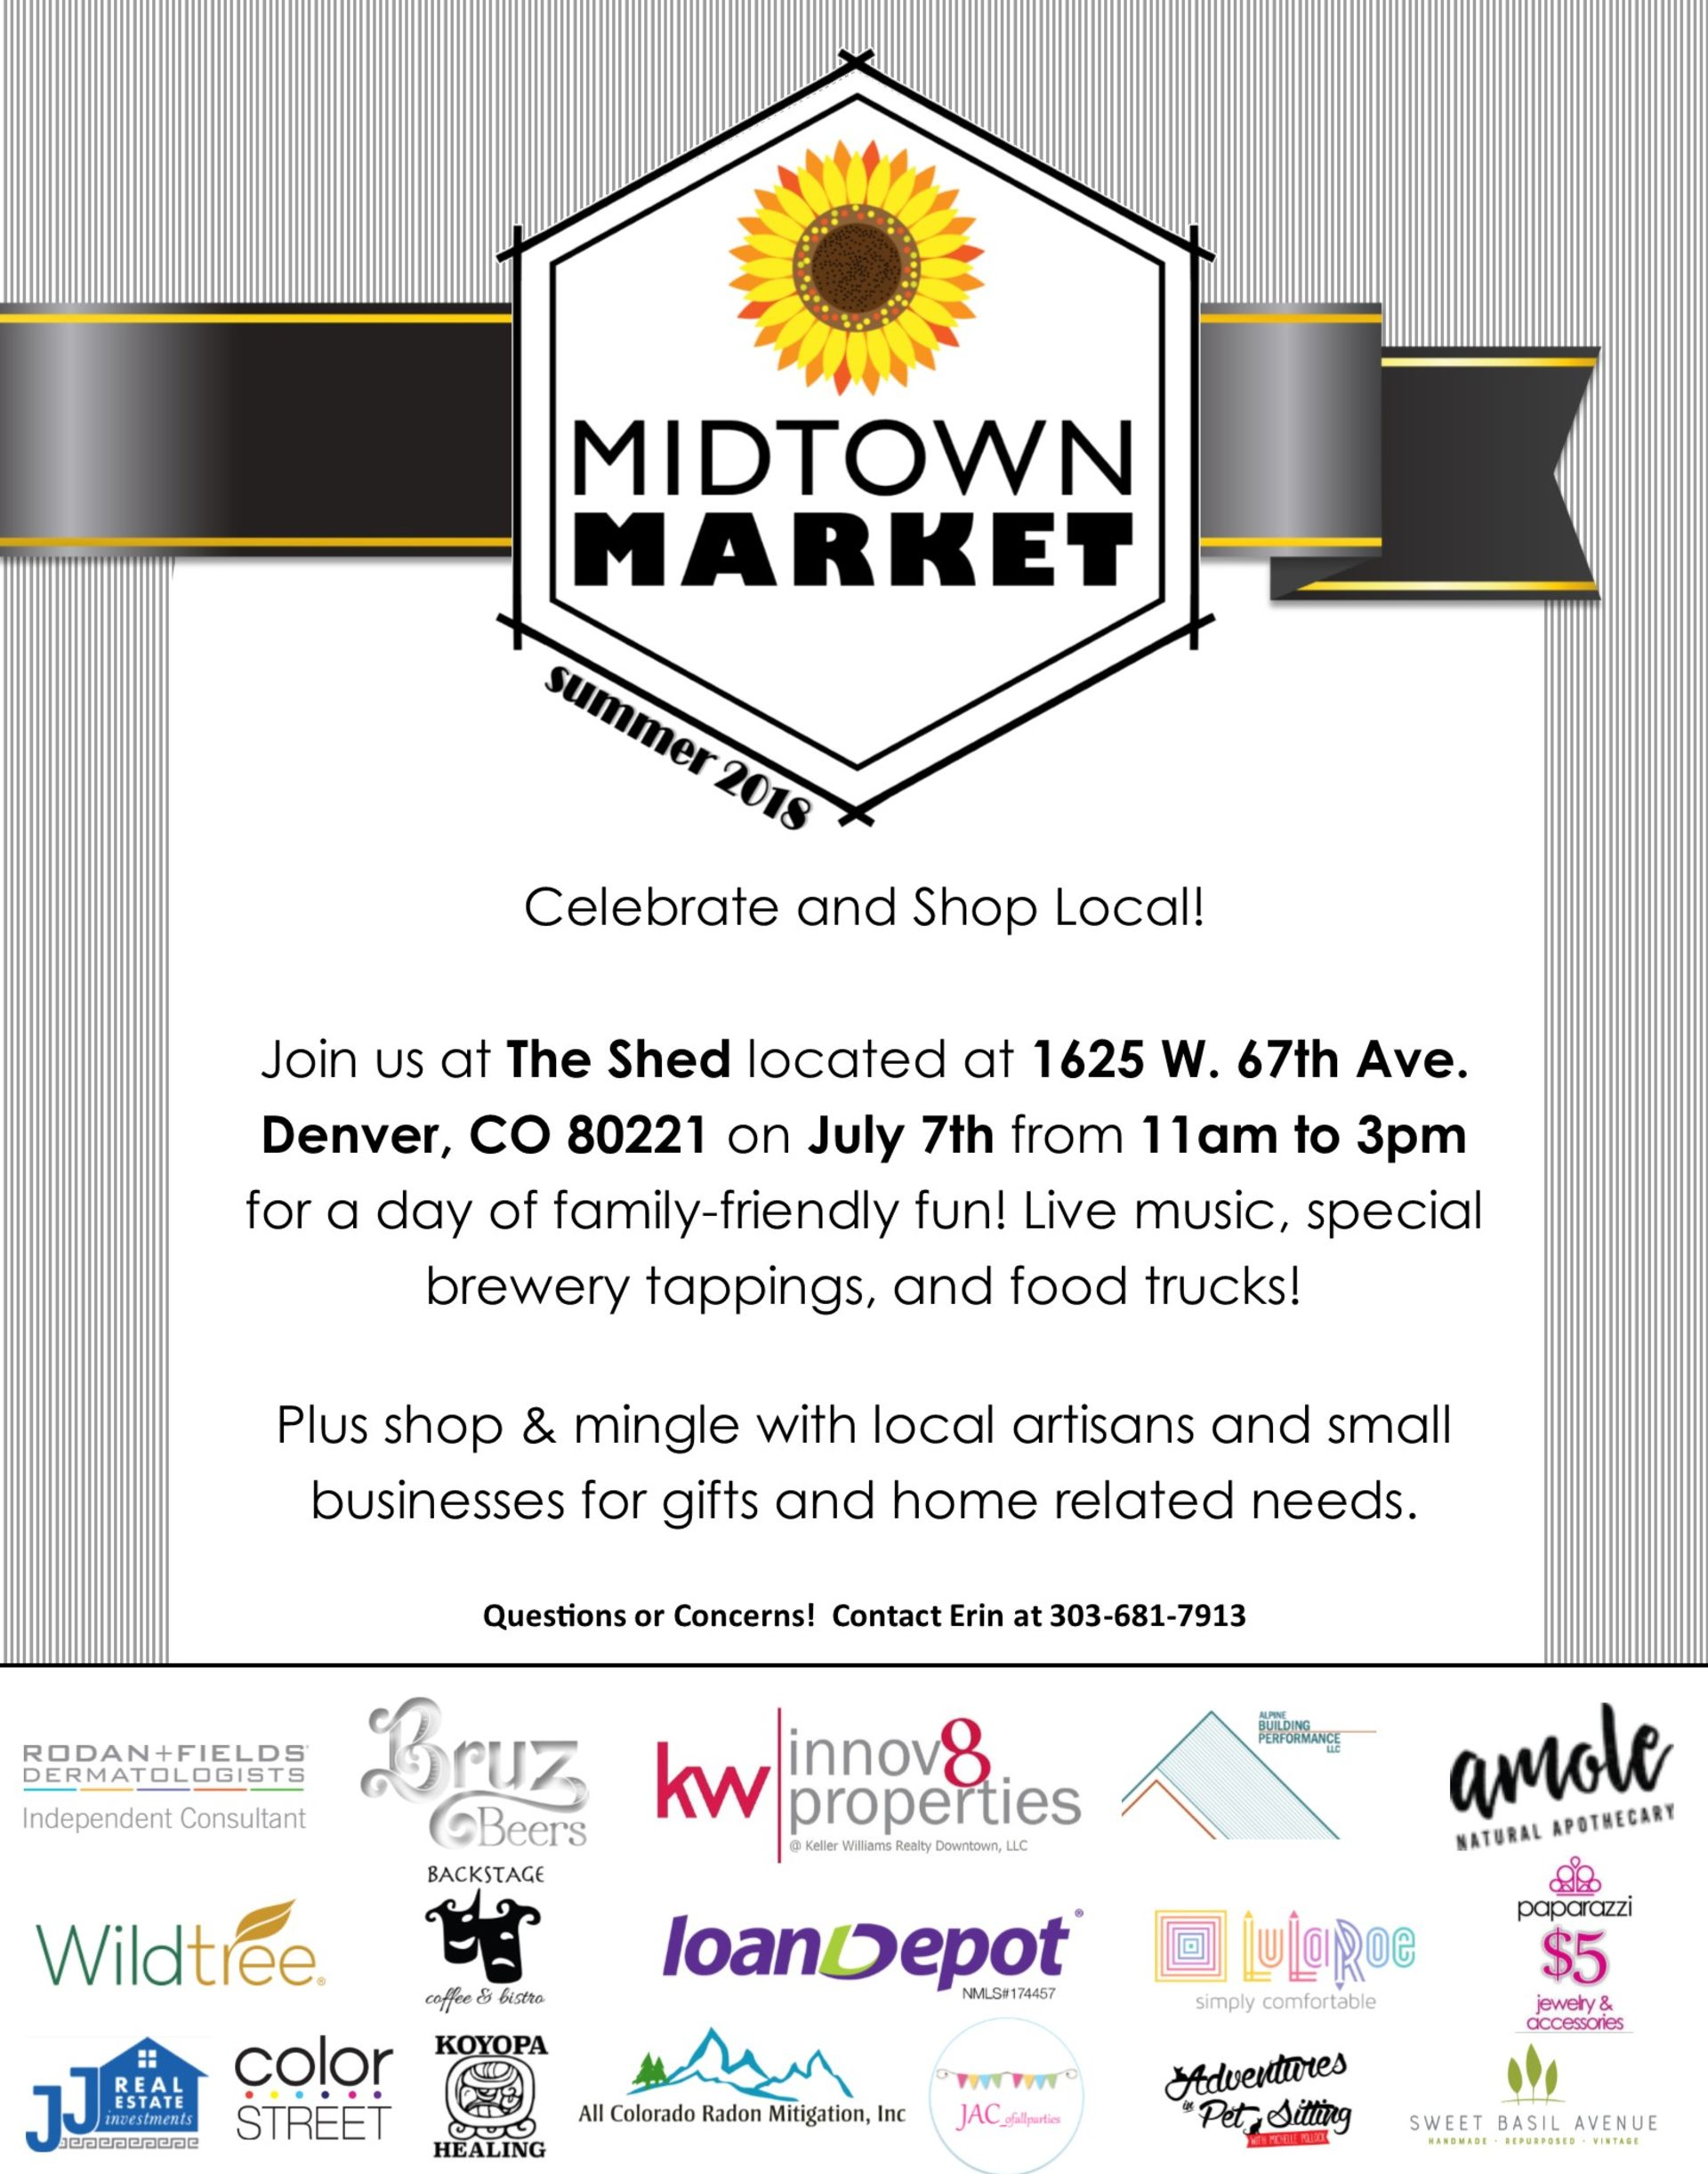 Midtown Market – Join The Fun This Weekend